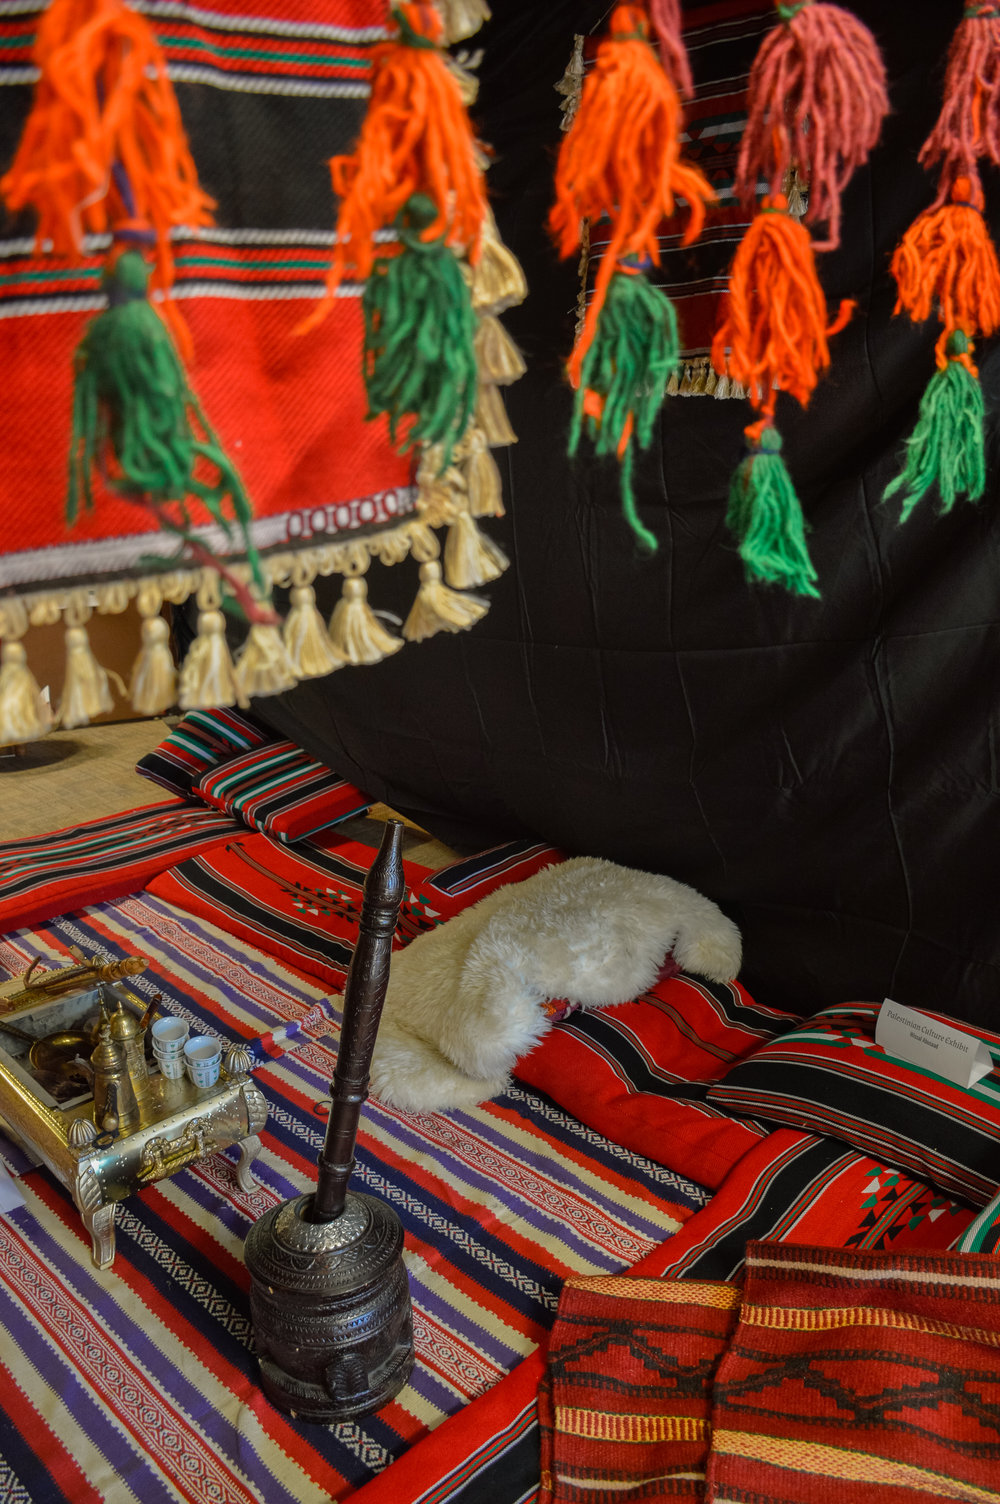 Traditional Israeli/Palestinian textures/colors, presented during a time in which those present were welcomed to sit and engage with others.